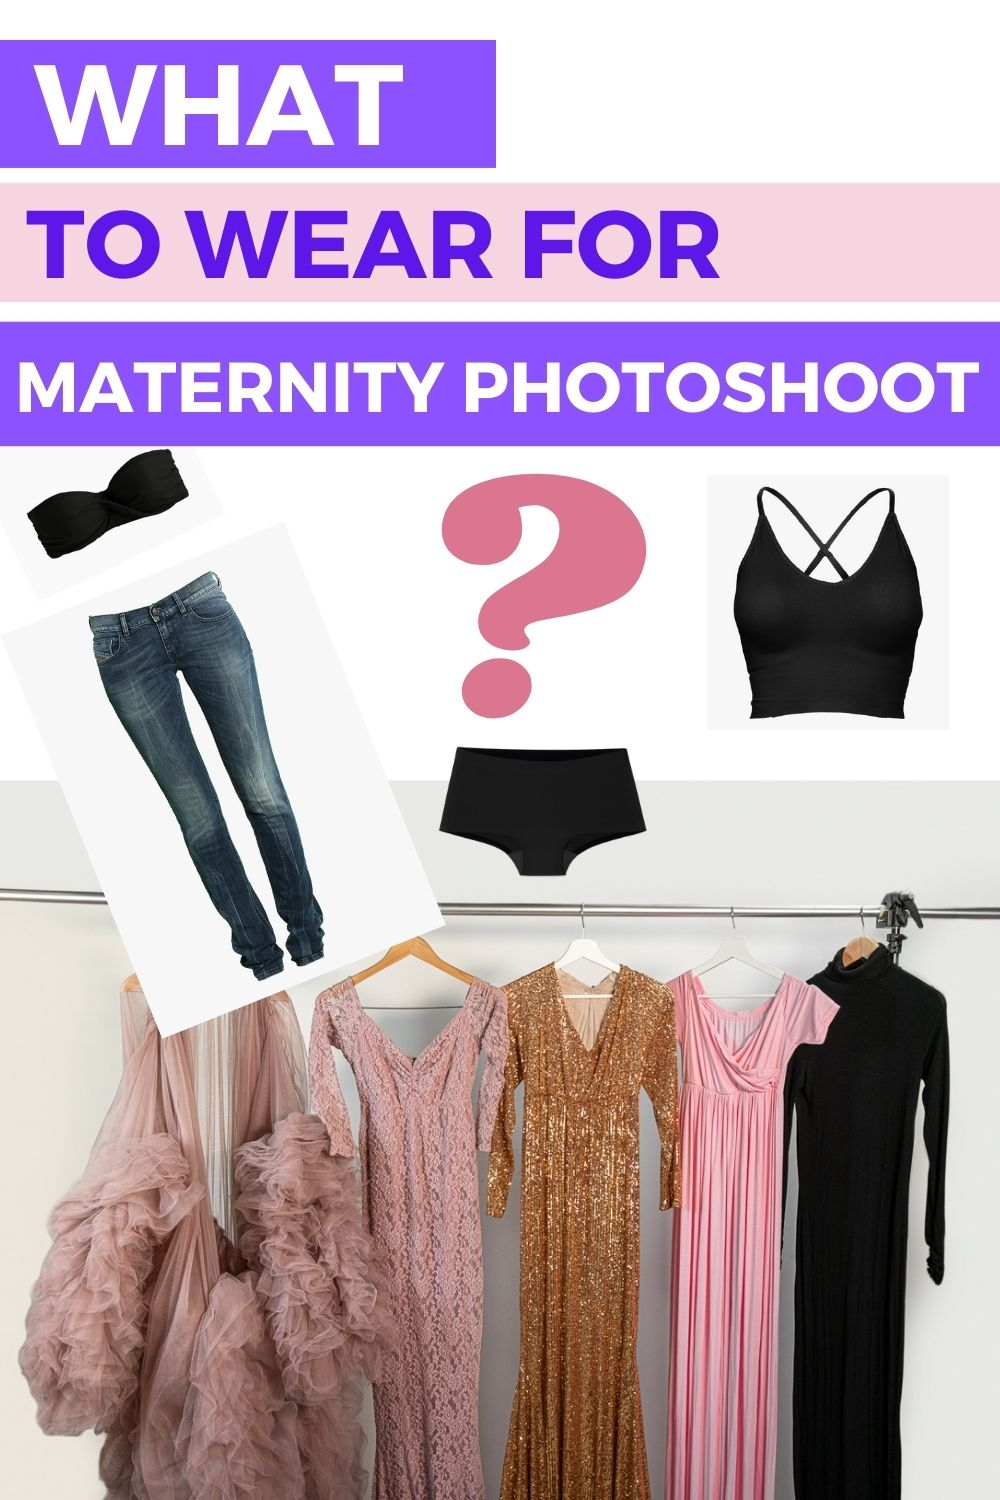 What to wear for a maternity photoshoot 1